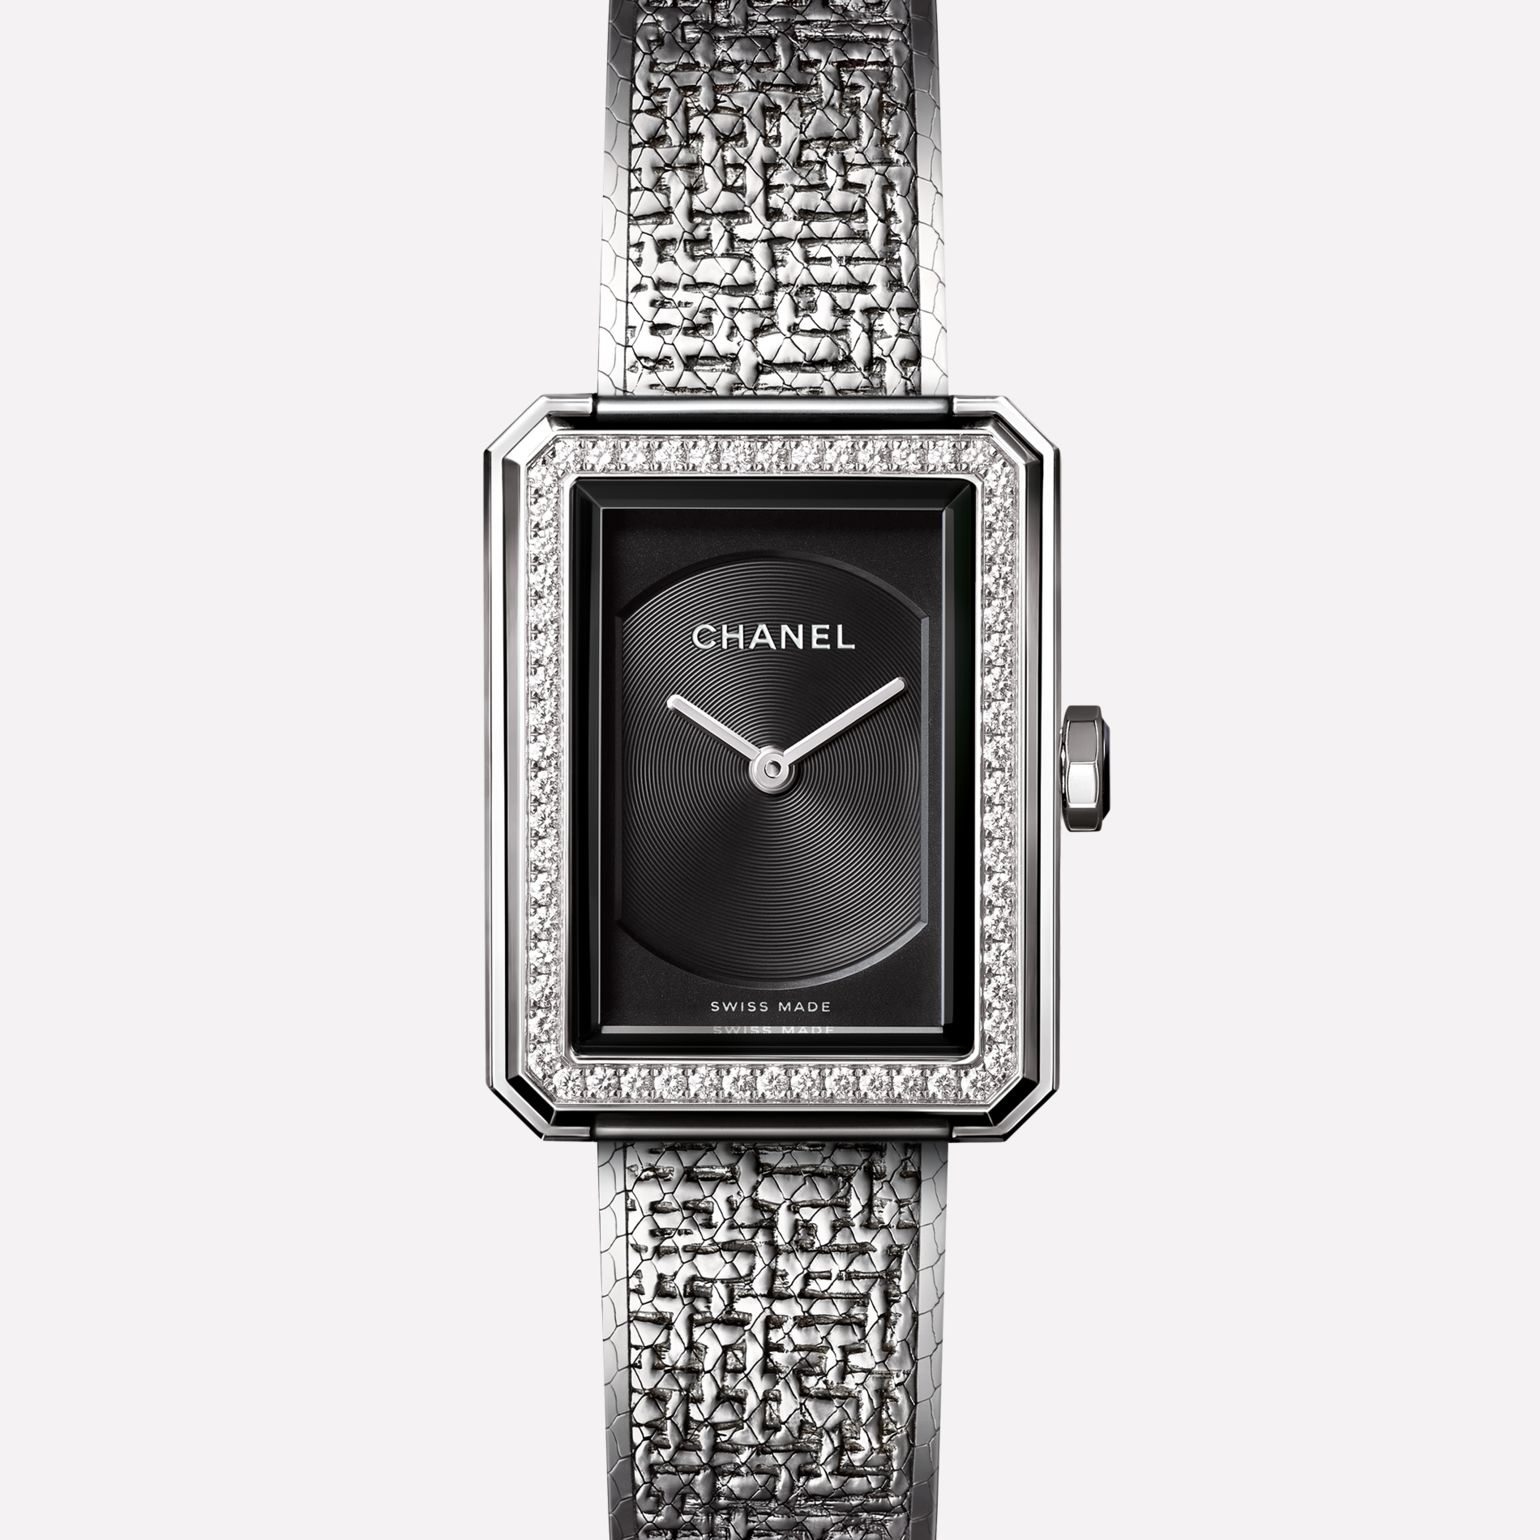 PREMIÈRE∙BOY DE CHANEL TWEED Small version, steel set with diamonds